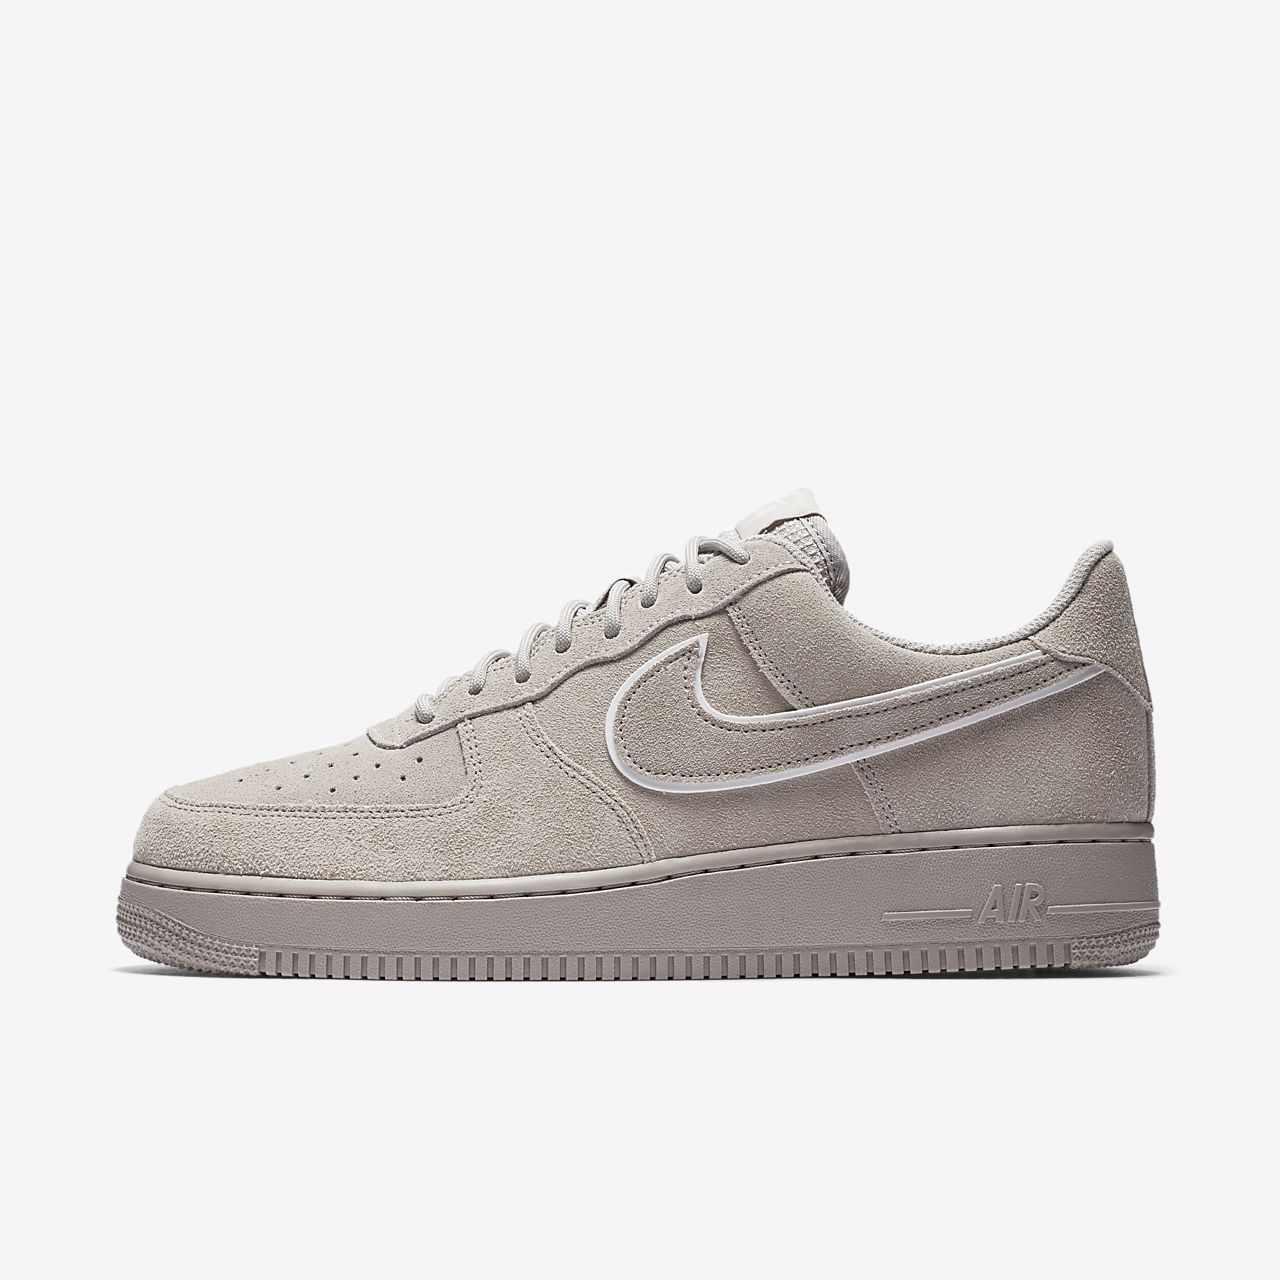 nike air force one 1 07 lv8 suede